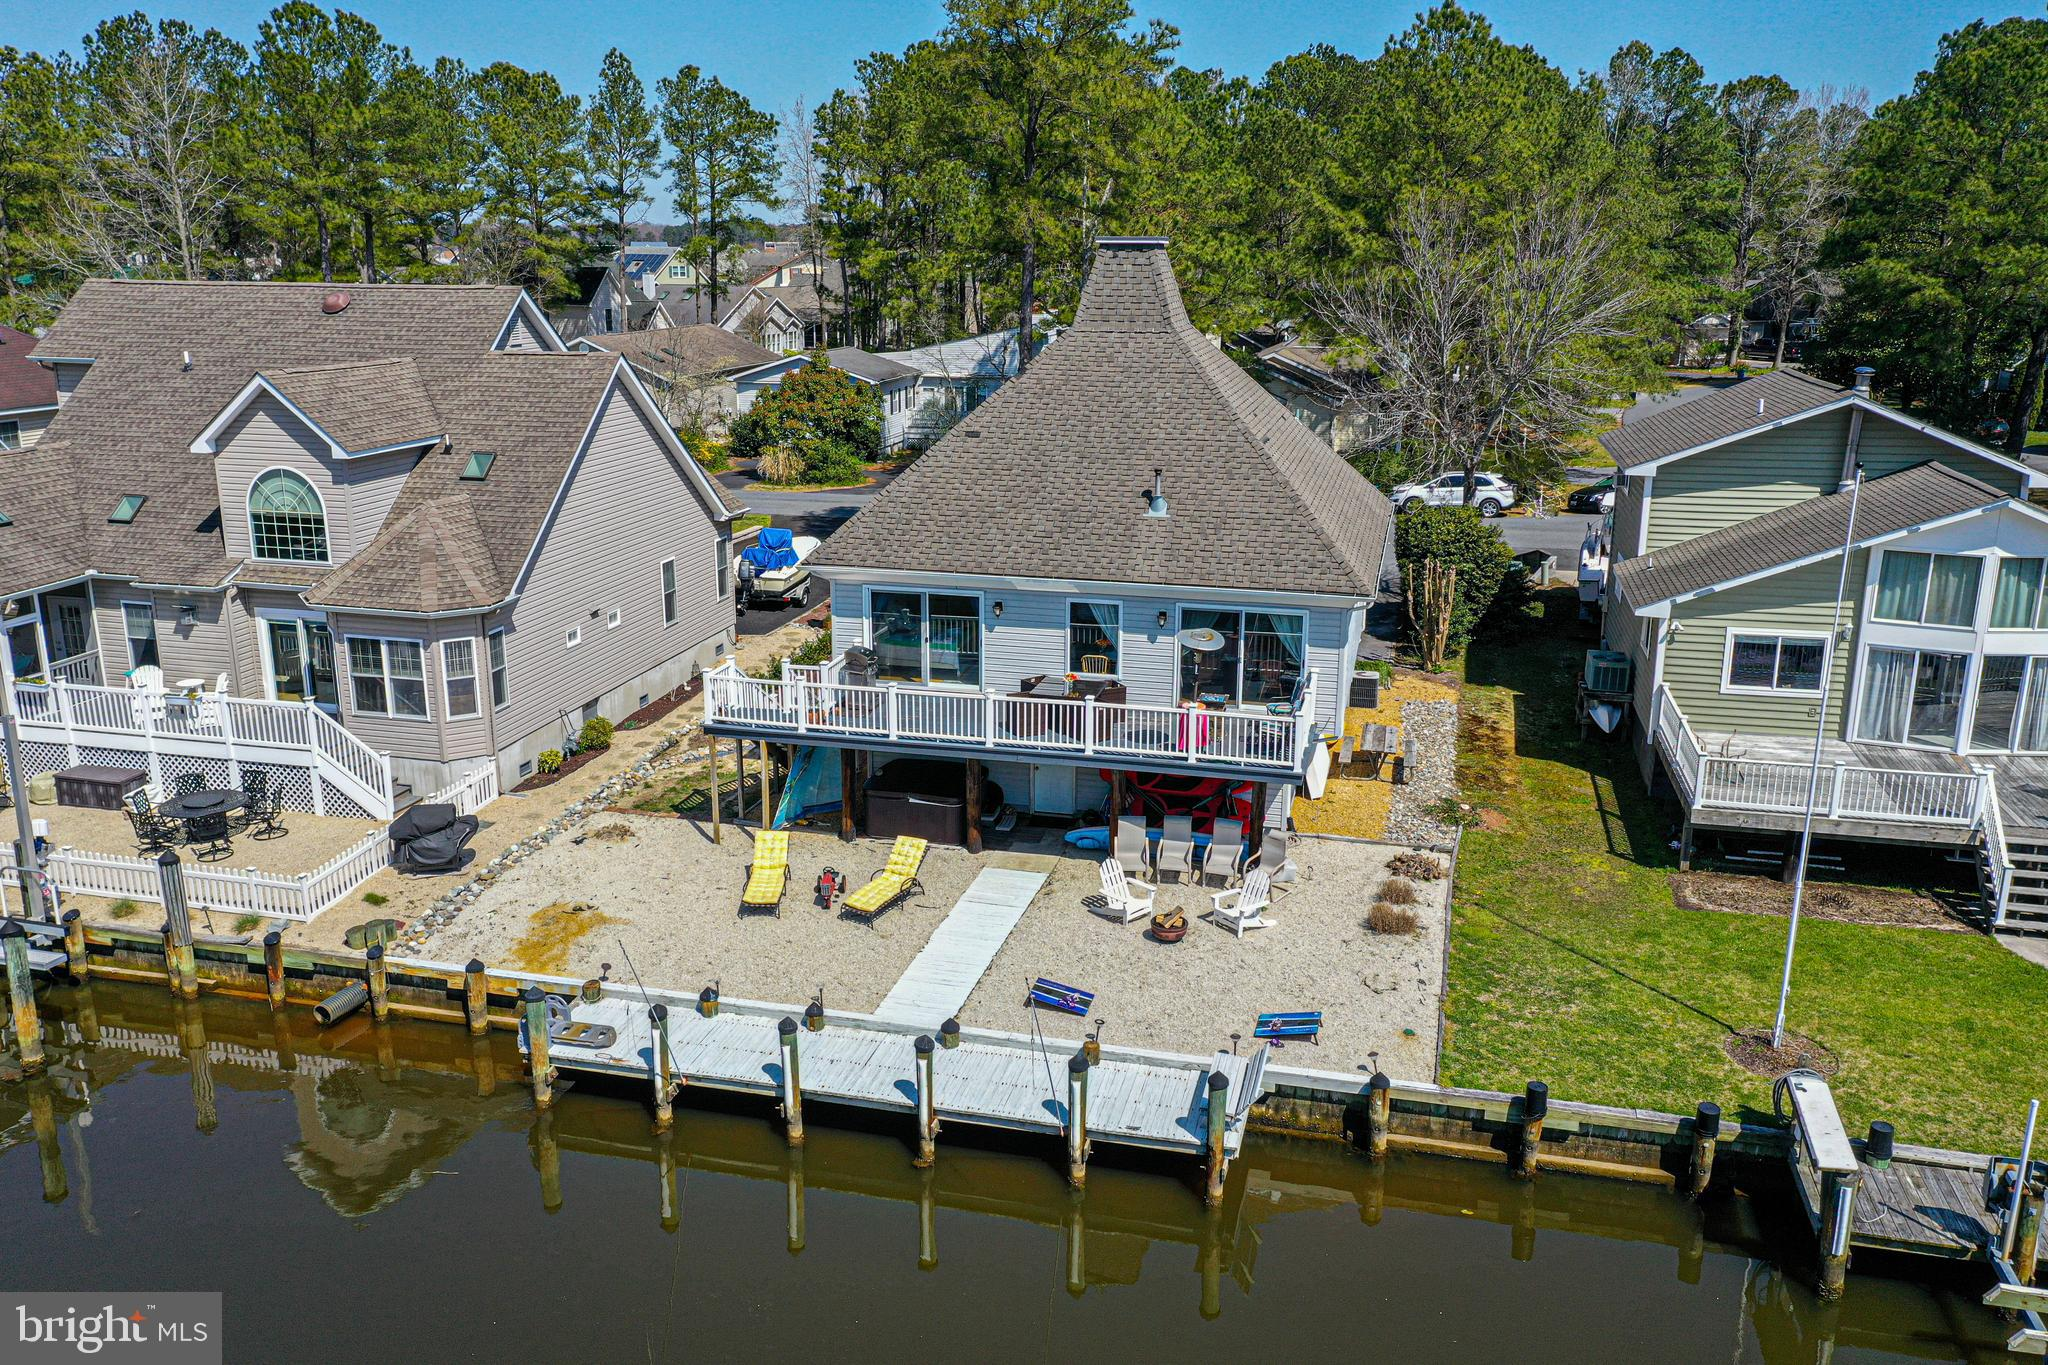 Looking for a waterfront vacation home or primary residence in Ocean Pines?   Look no further- showings start on 4/21 at 'The Teal House.'  This adorable canal front (quick access to open water- no bridges) home  with boat dockage is sold mostly furnished and ready for your enjoyment this summer.  The main level includes an open living/dining/ kitchen area with updated counters, cabinets and flooring as well as 2 bedrooms including an owners suite w/ slider out to the canal front balcony.  The upper level loft area offers a lg flex space for additional bedroom, living area, or home office.  There is ample storage in the ground floor storage area/garage as well as underneath the upper level deck for stowing paddle boards and other outdoor gear.   Located in amenity rich Ocean Pines which offers multiple community pools, golf course, Yacht Club and Marina, a beach club with private parking in Ocean City, and the many other activities (see oceanpines.org ) all just a short drive from the beaches of Assateague and Ocean City.  Sellers offering a one year HMS warranty.